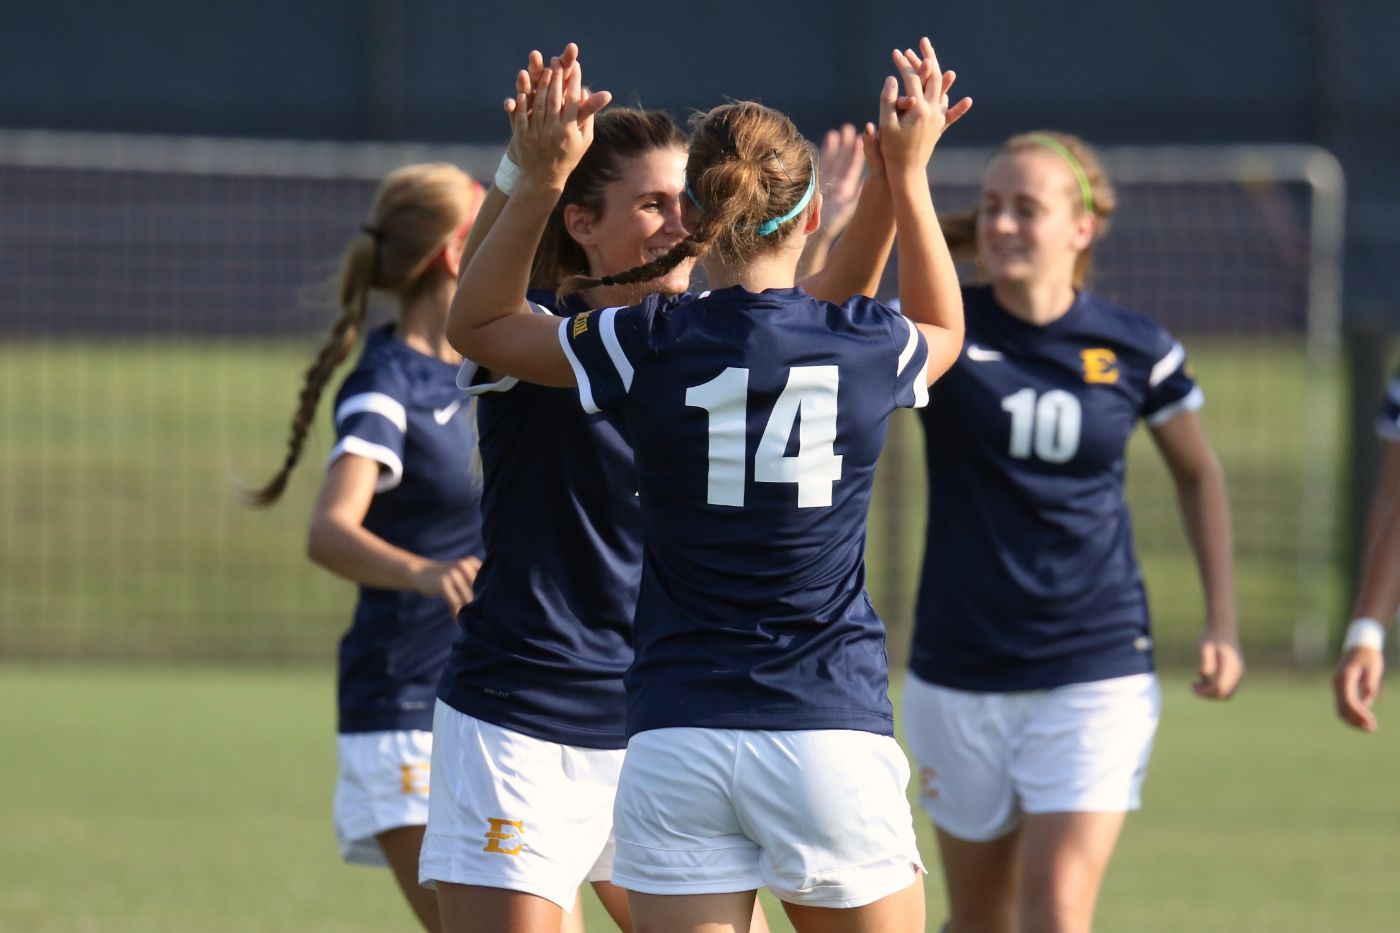 Bucs Offense shines in 4-2 victory over Eastern Kentucky